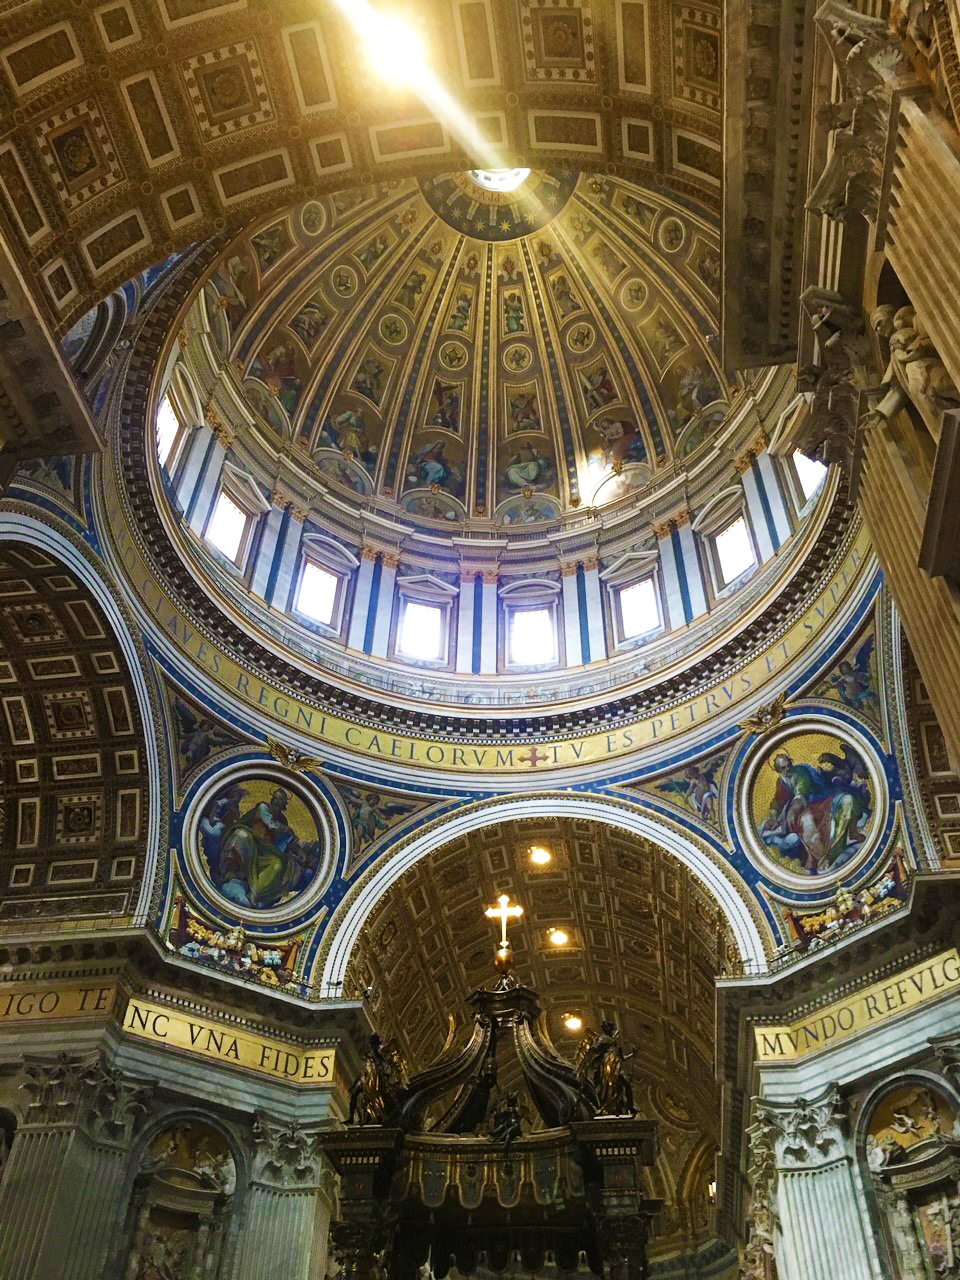 The Dome in St. Peter's Basilica, Vatican City